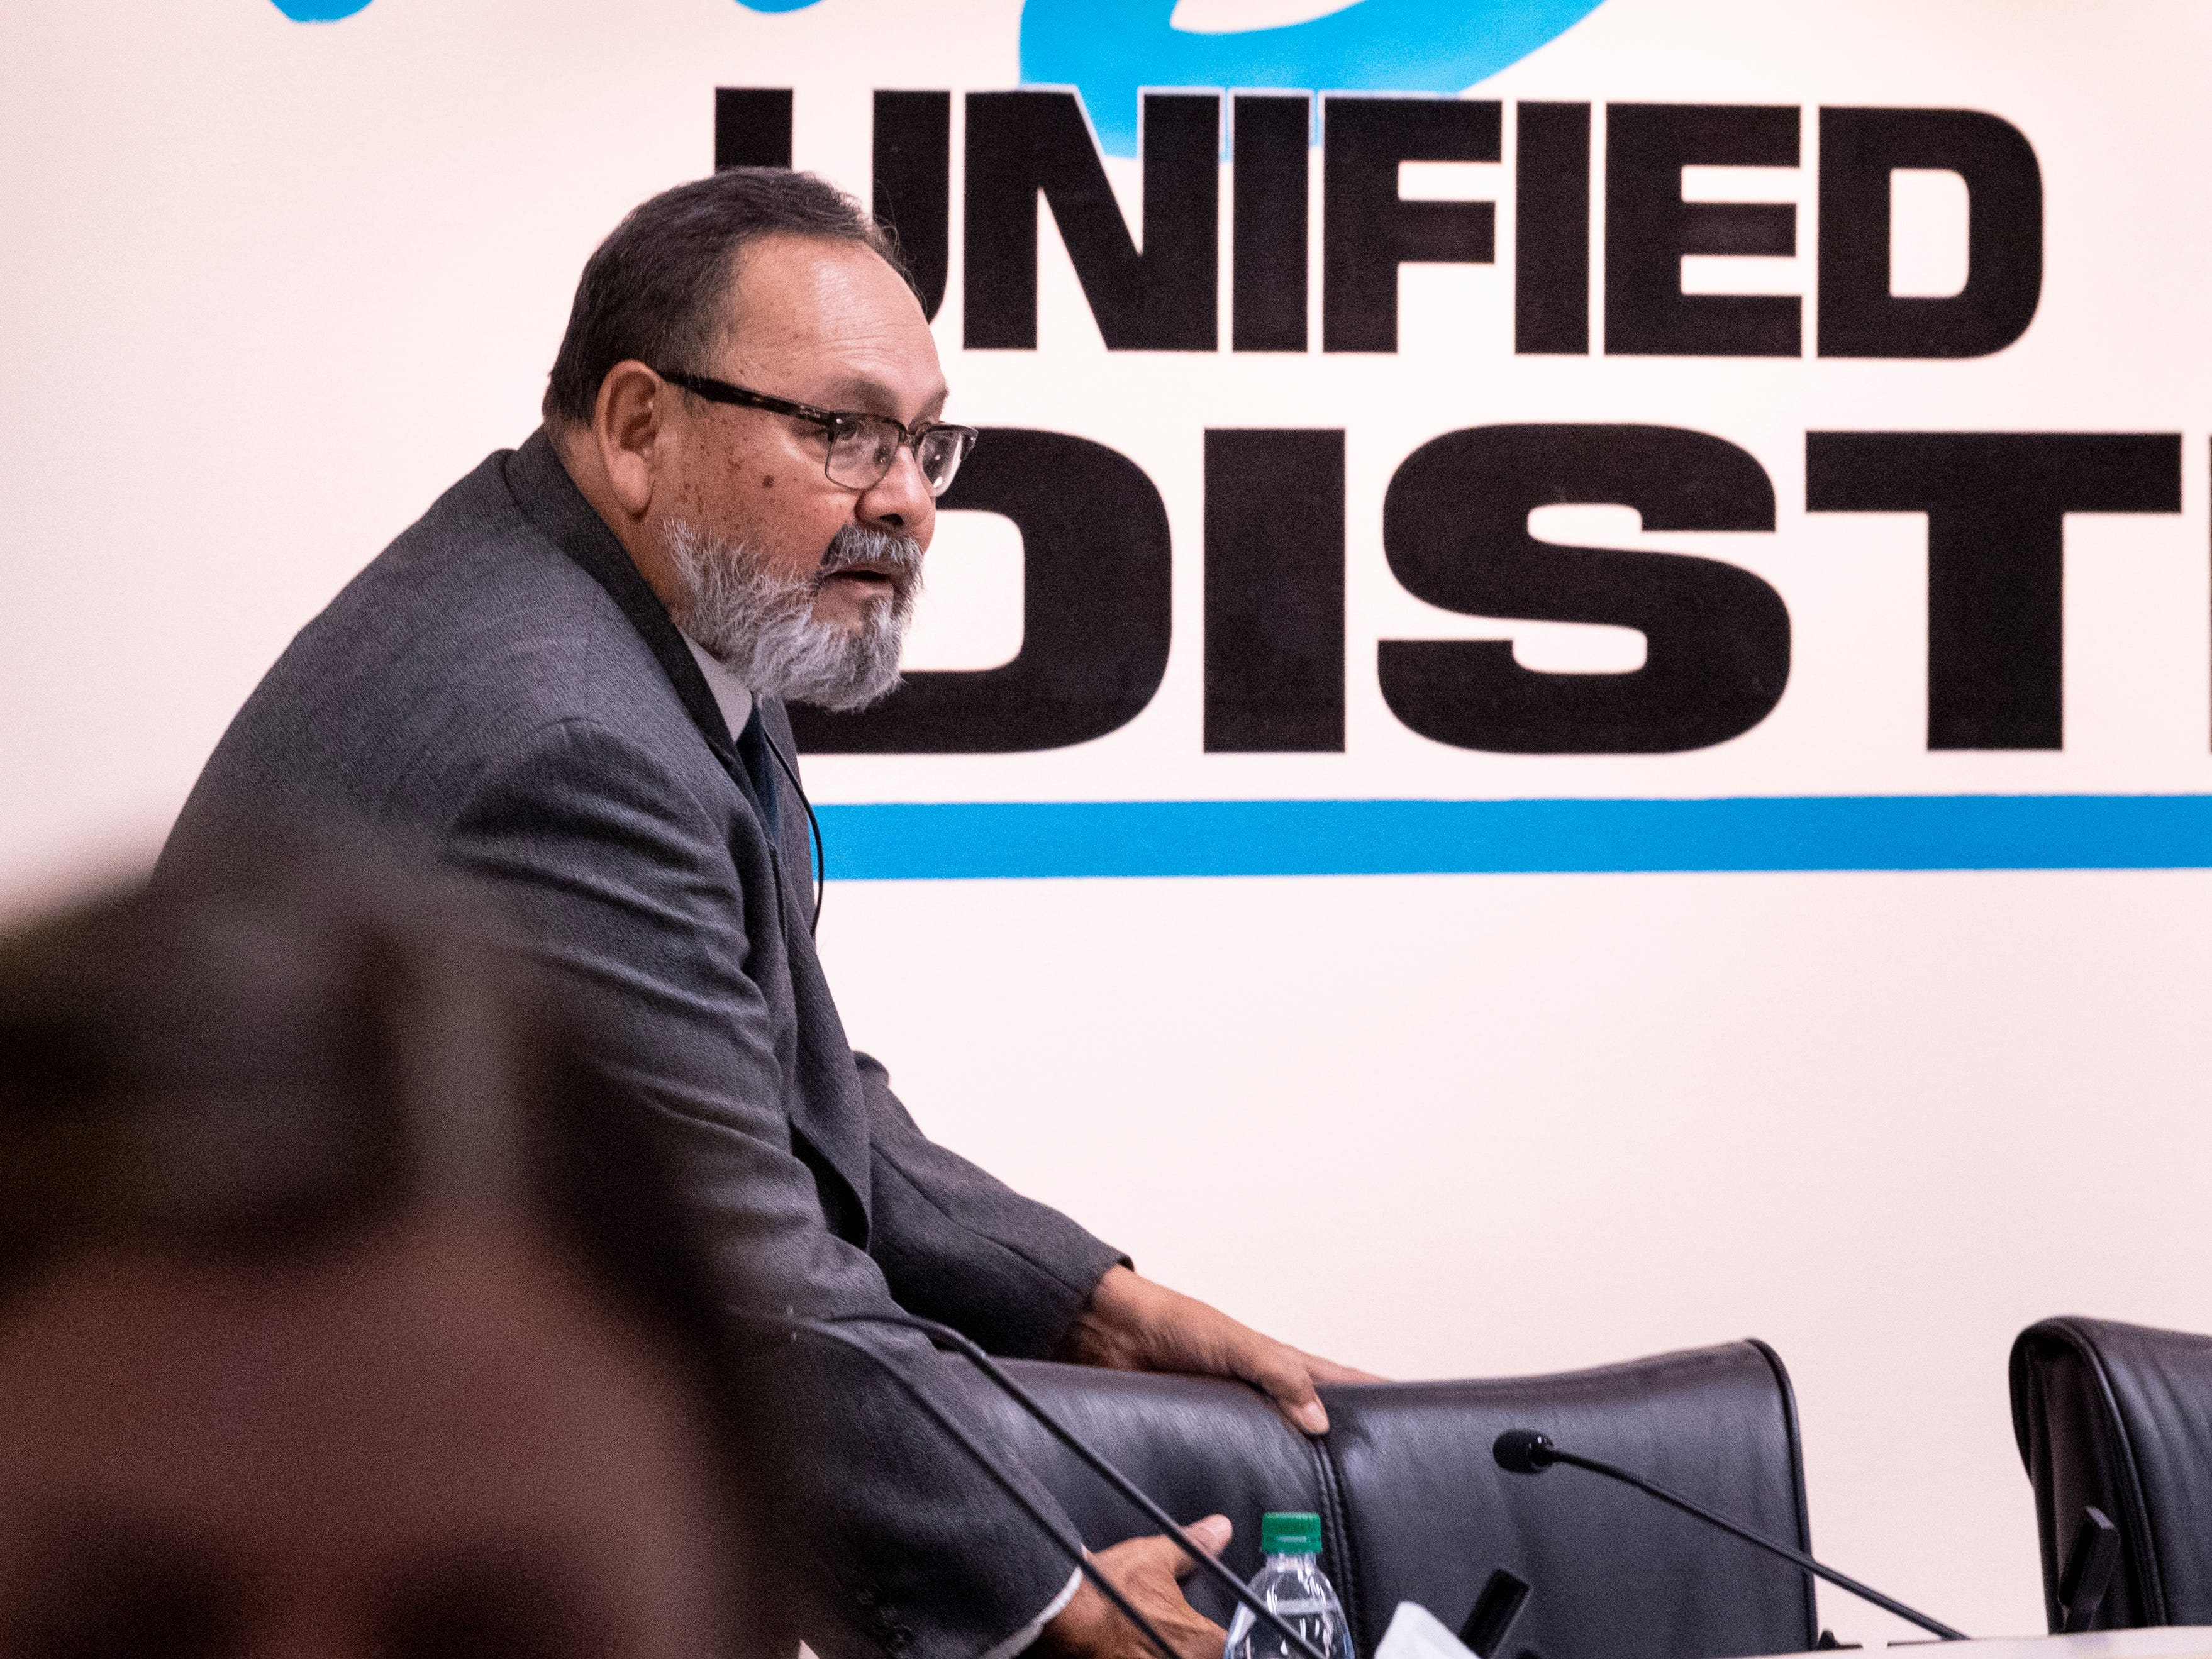 Visalia school board Trustee Juan Guerrero returns to his seat before the board announces they had voted to accept the resignation of Todd Oto on Tuesday, May 7, 2019.